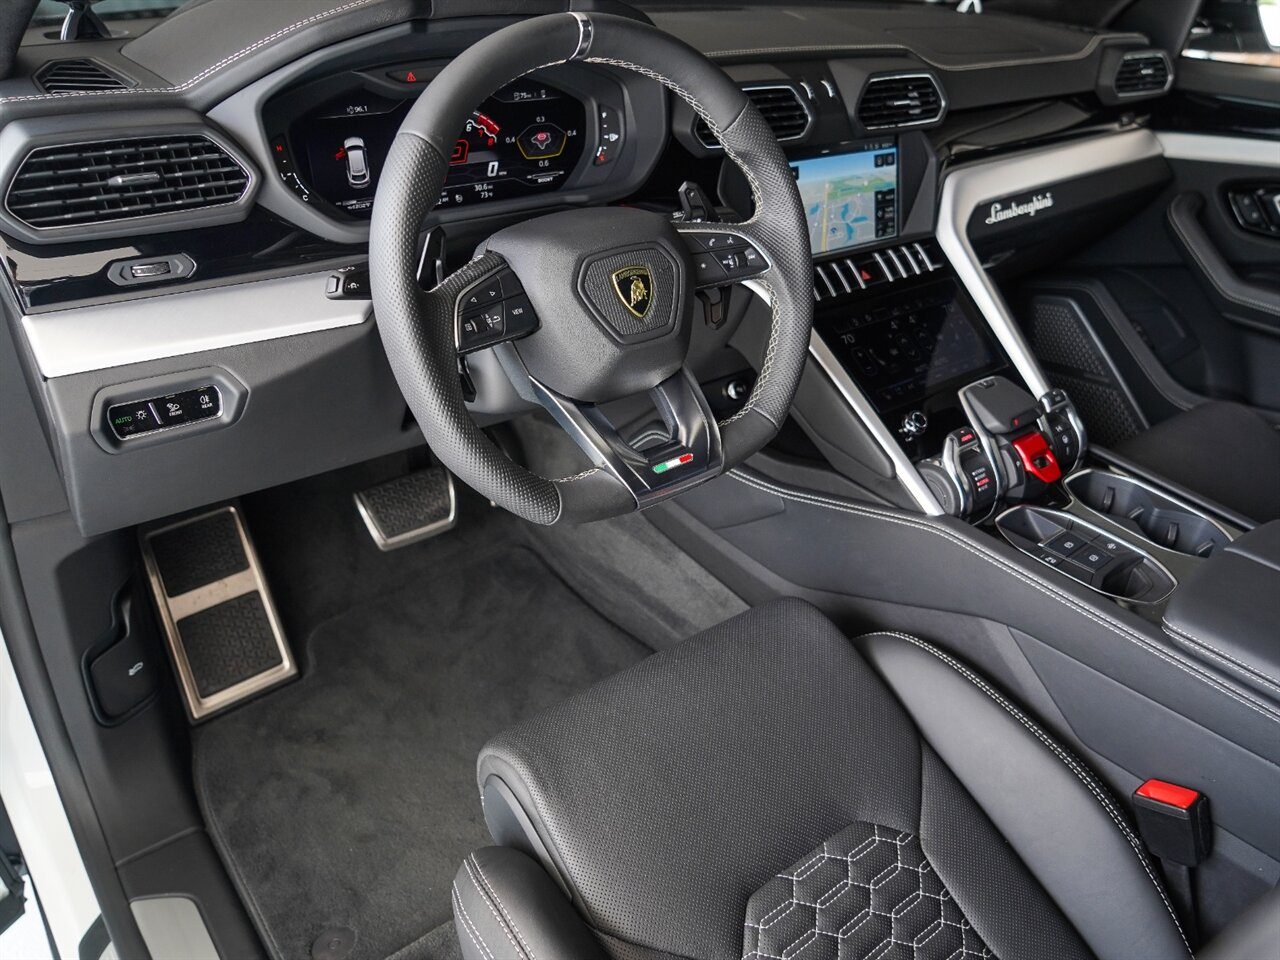 2019 Lamborghini Urus For Sale In Bonita Springs Fl Stock A03750 19